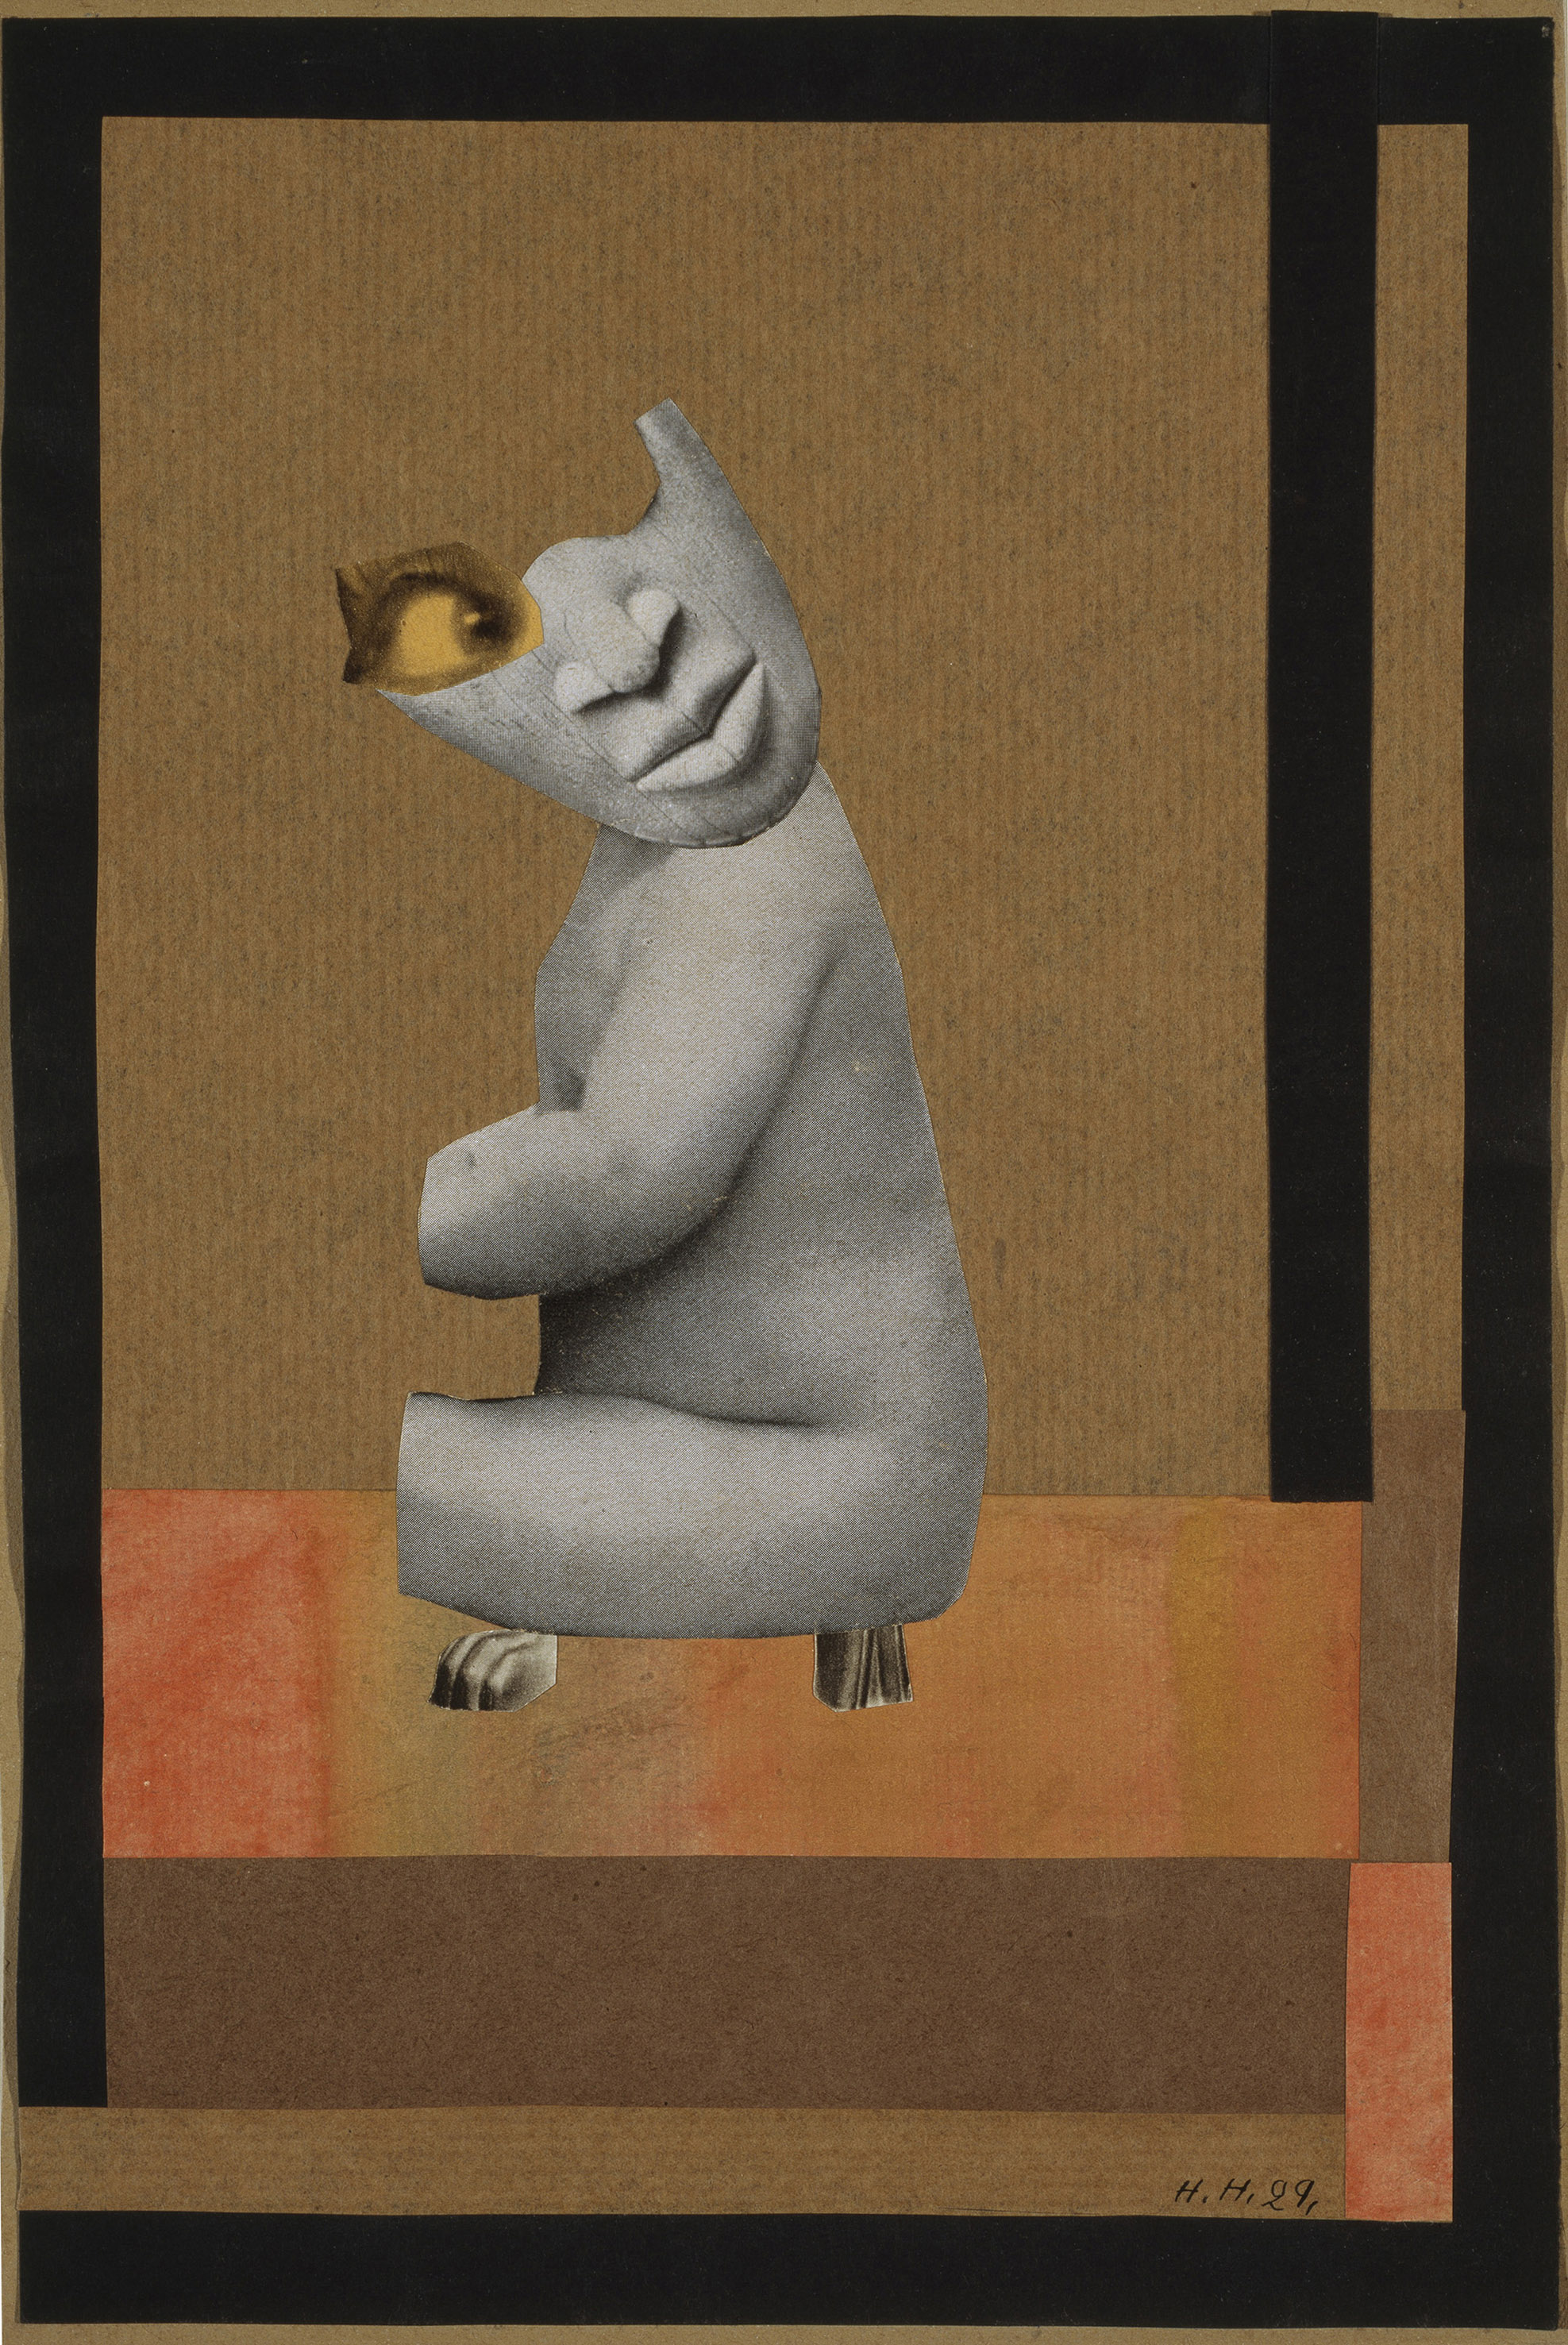 Aus der Sammlung: Aus einem ethnographischen Museum (From the Collection: From an Ethnographic Museum), 1929 Collage and gouache on paper. 26 x 17.5 cm Scottish National Gallery of Modern Art, Edinburgh. Bequeathed by Gabrielle Keiller, 1995